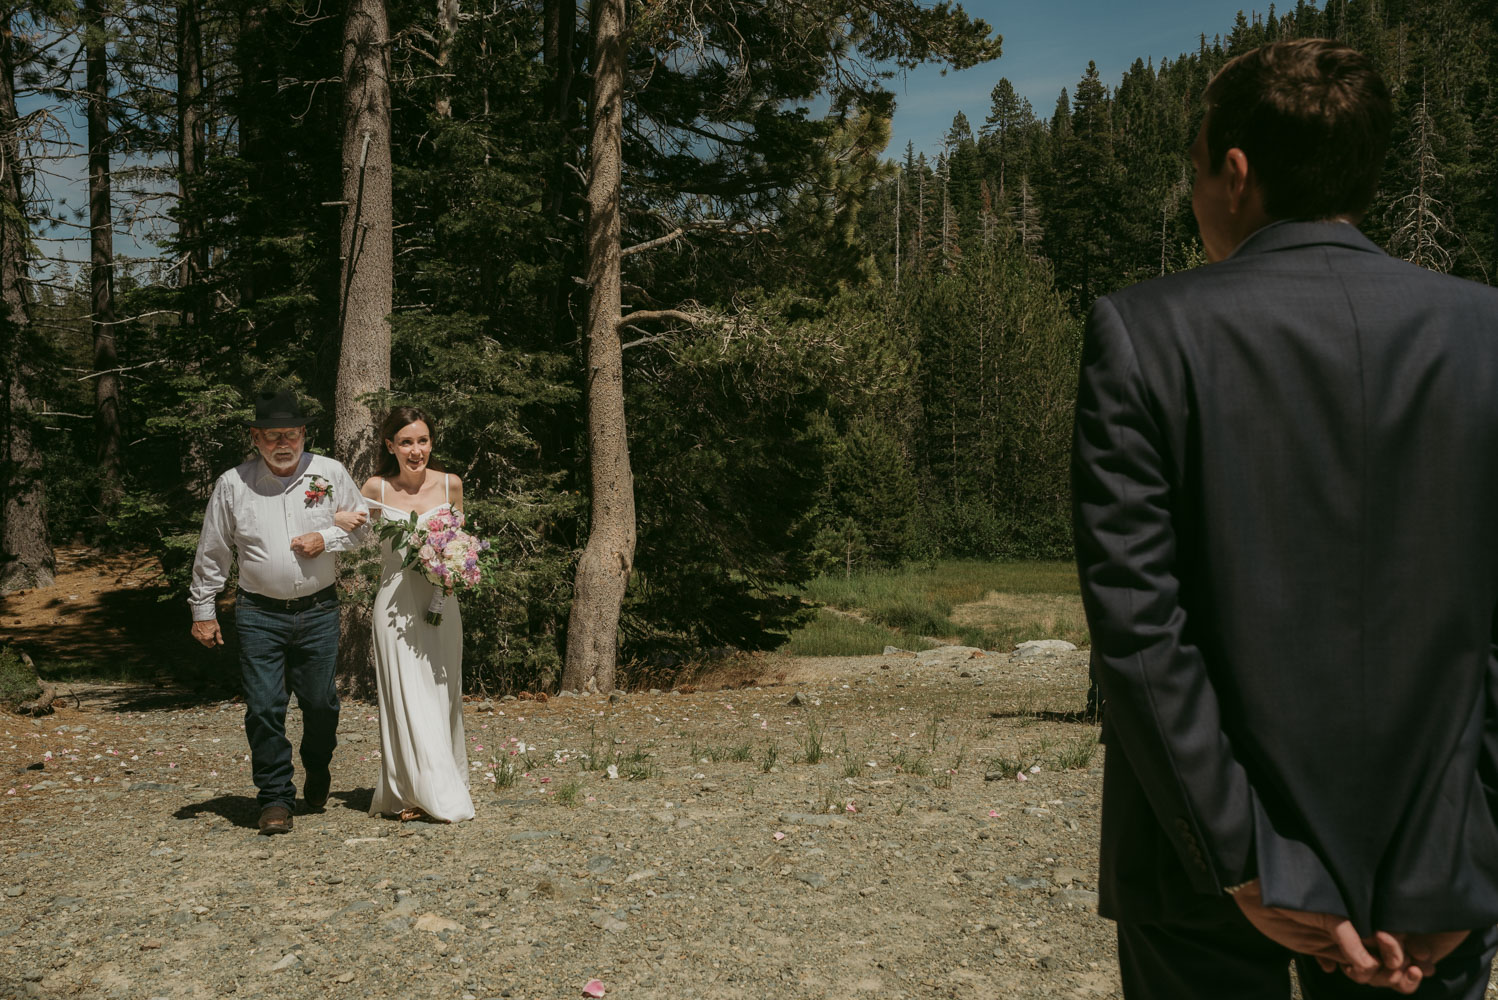 Elopement in Sardine Lake, ceremony photo, bride walking down the aisle with her father